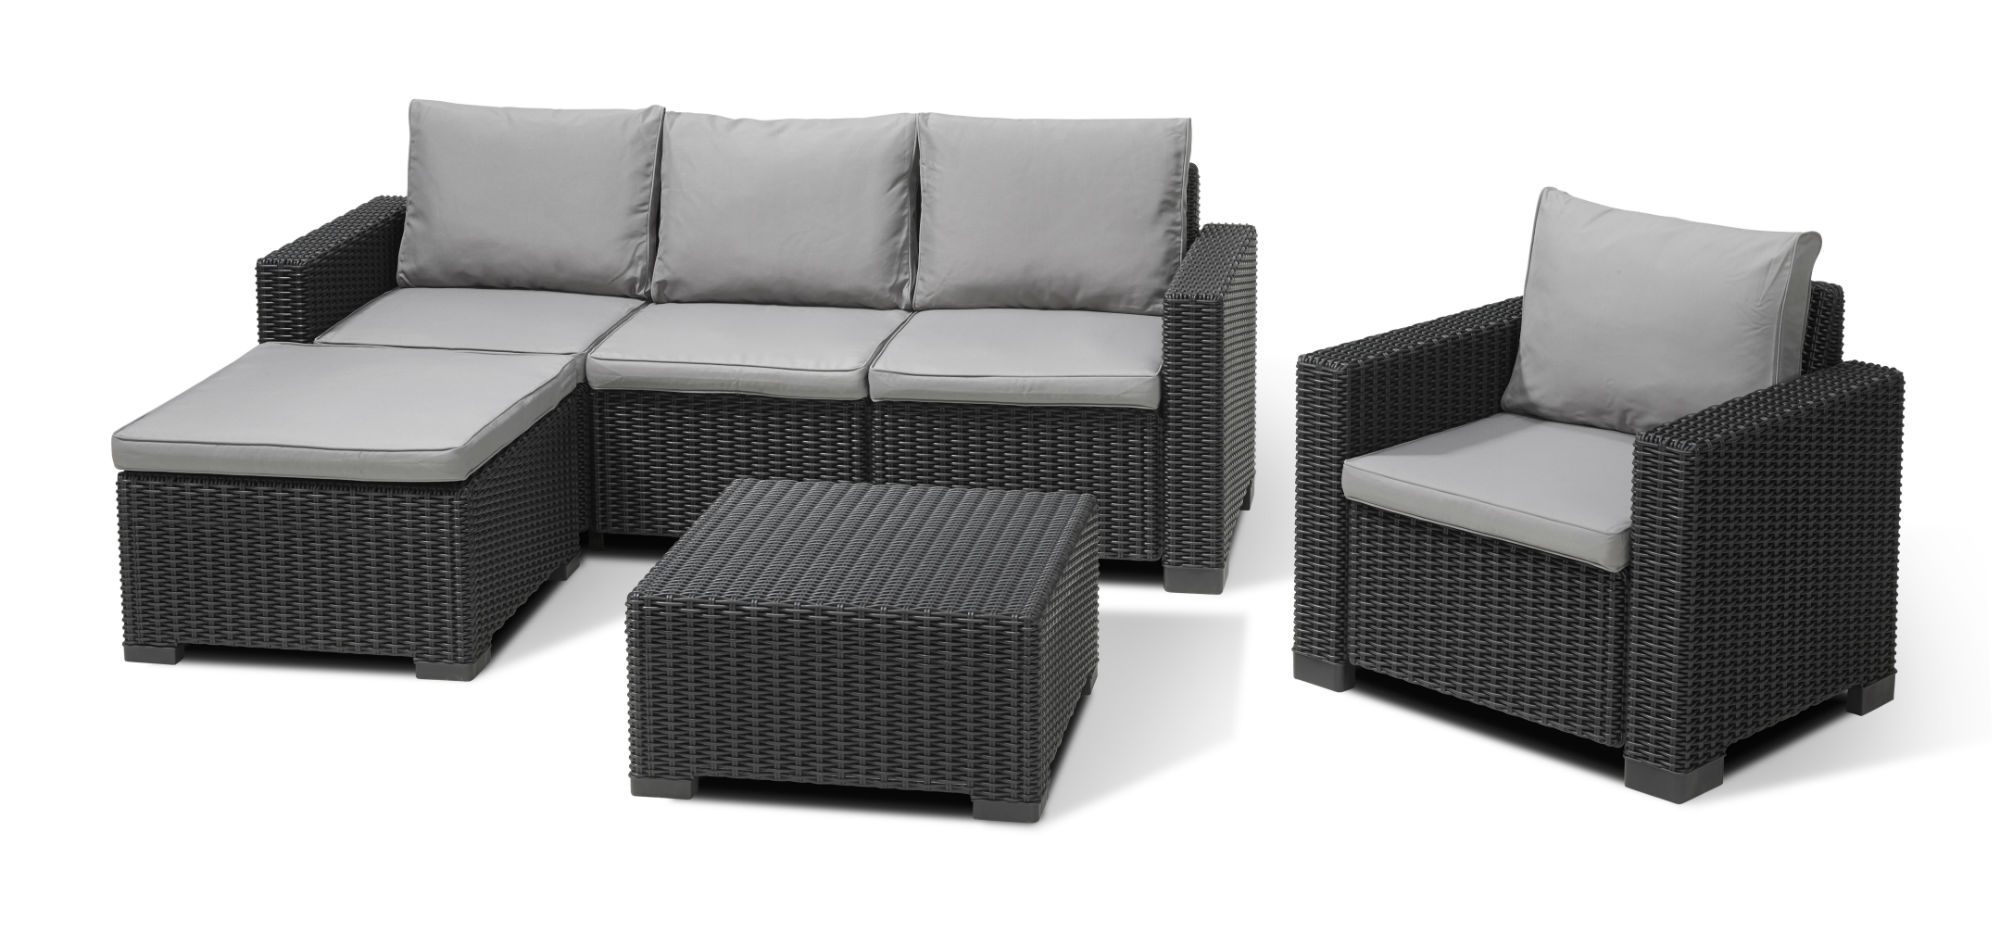 allibert moorea lounge set graphite allibert